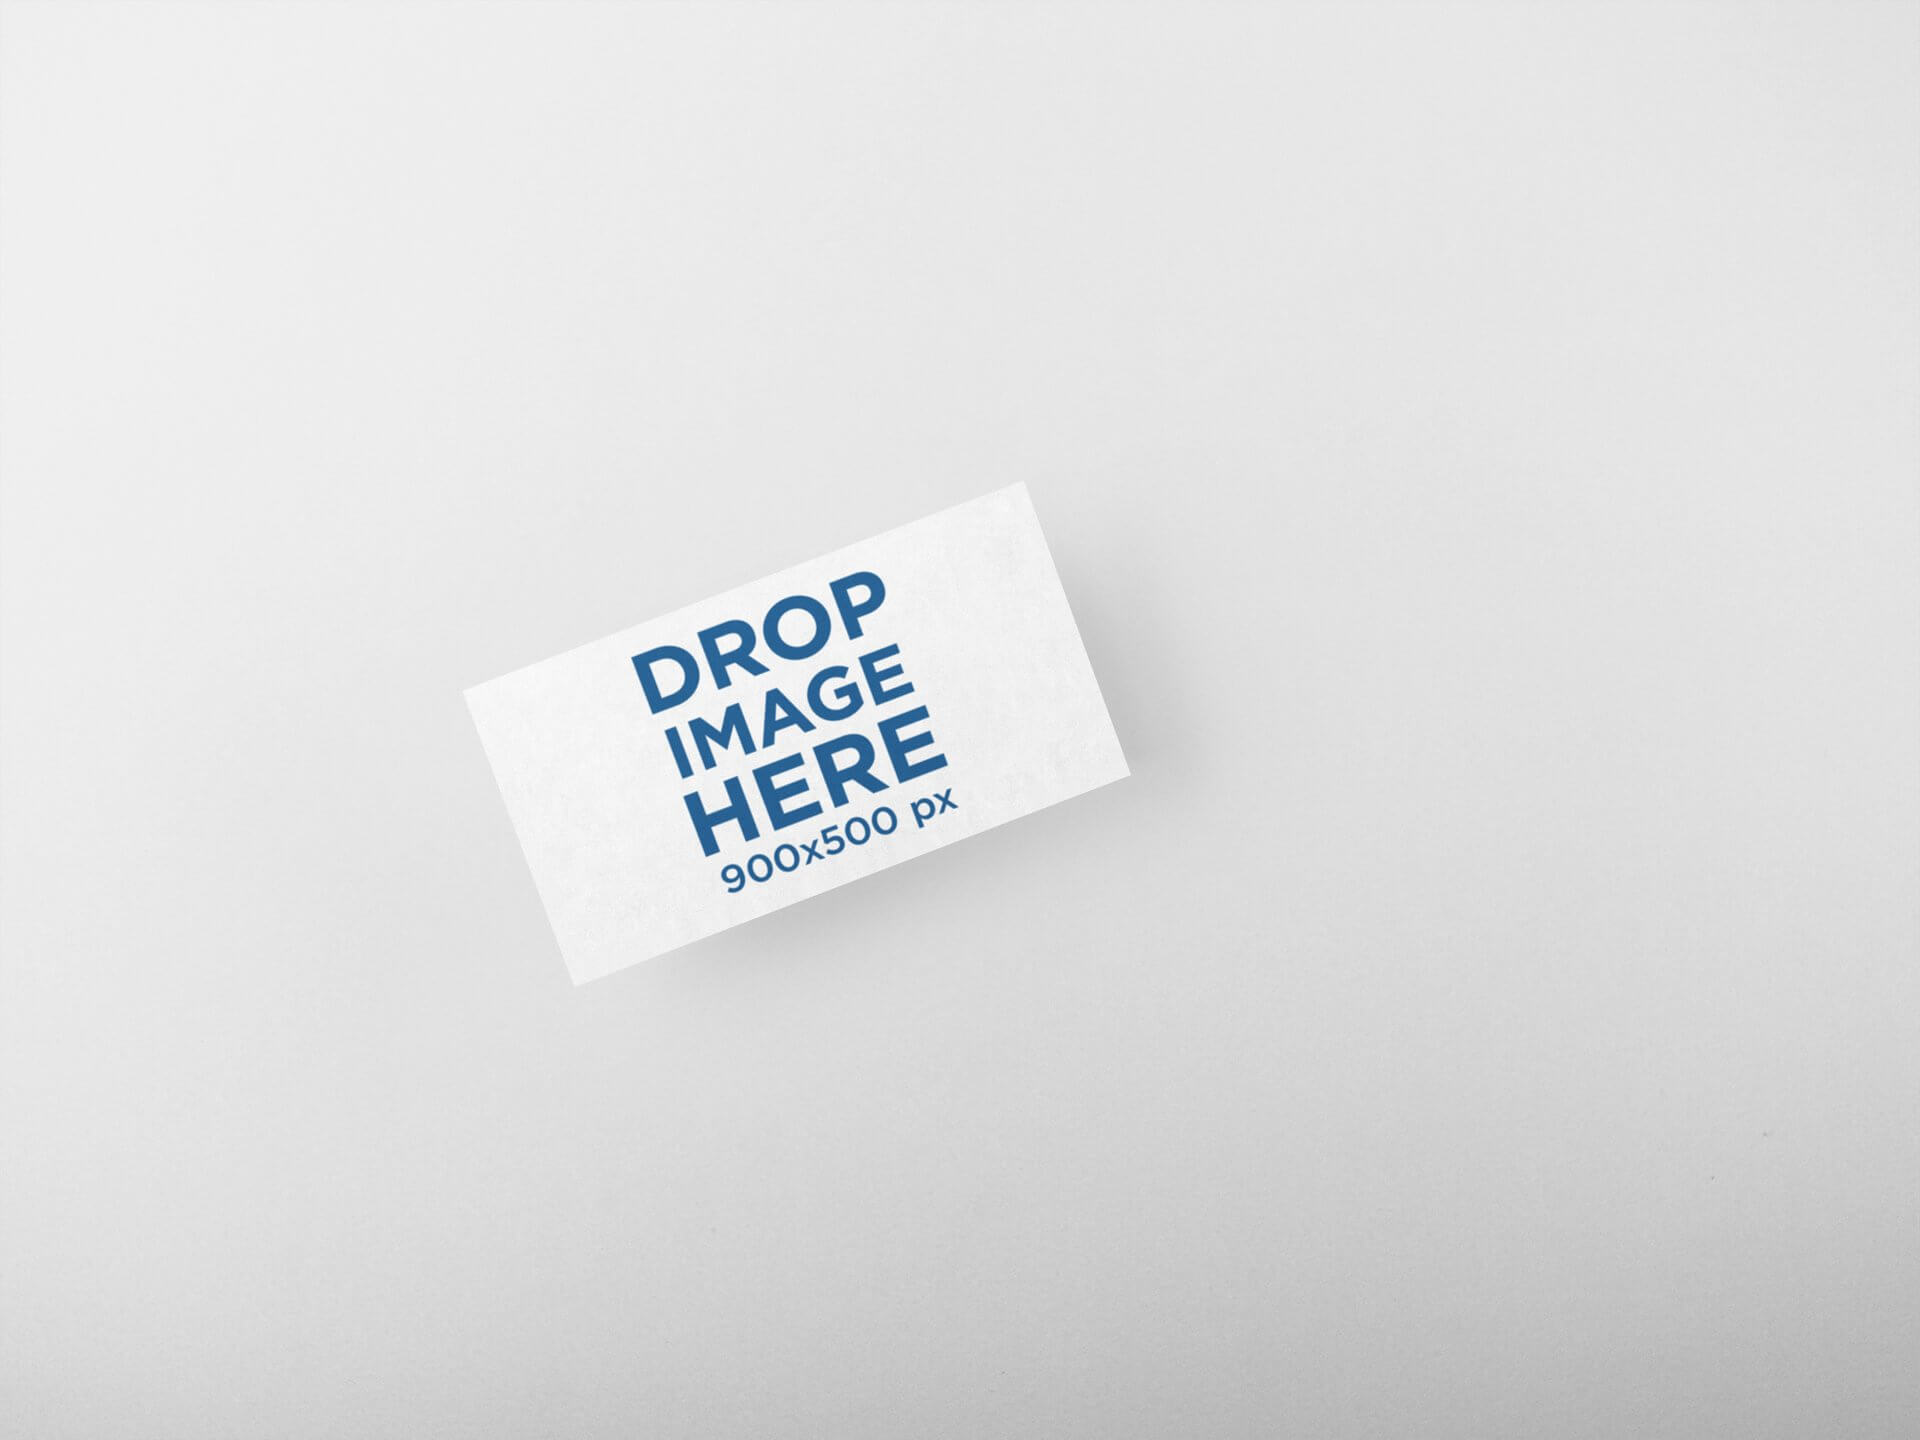 BUSINESS CARD MOCKUP LYING ON A SOLID SURFACE